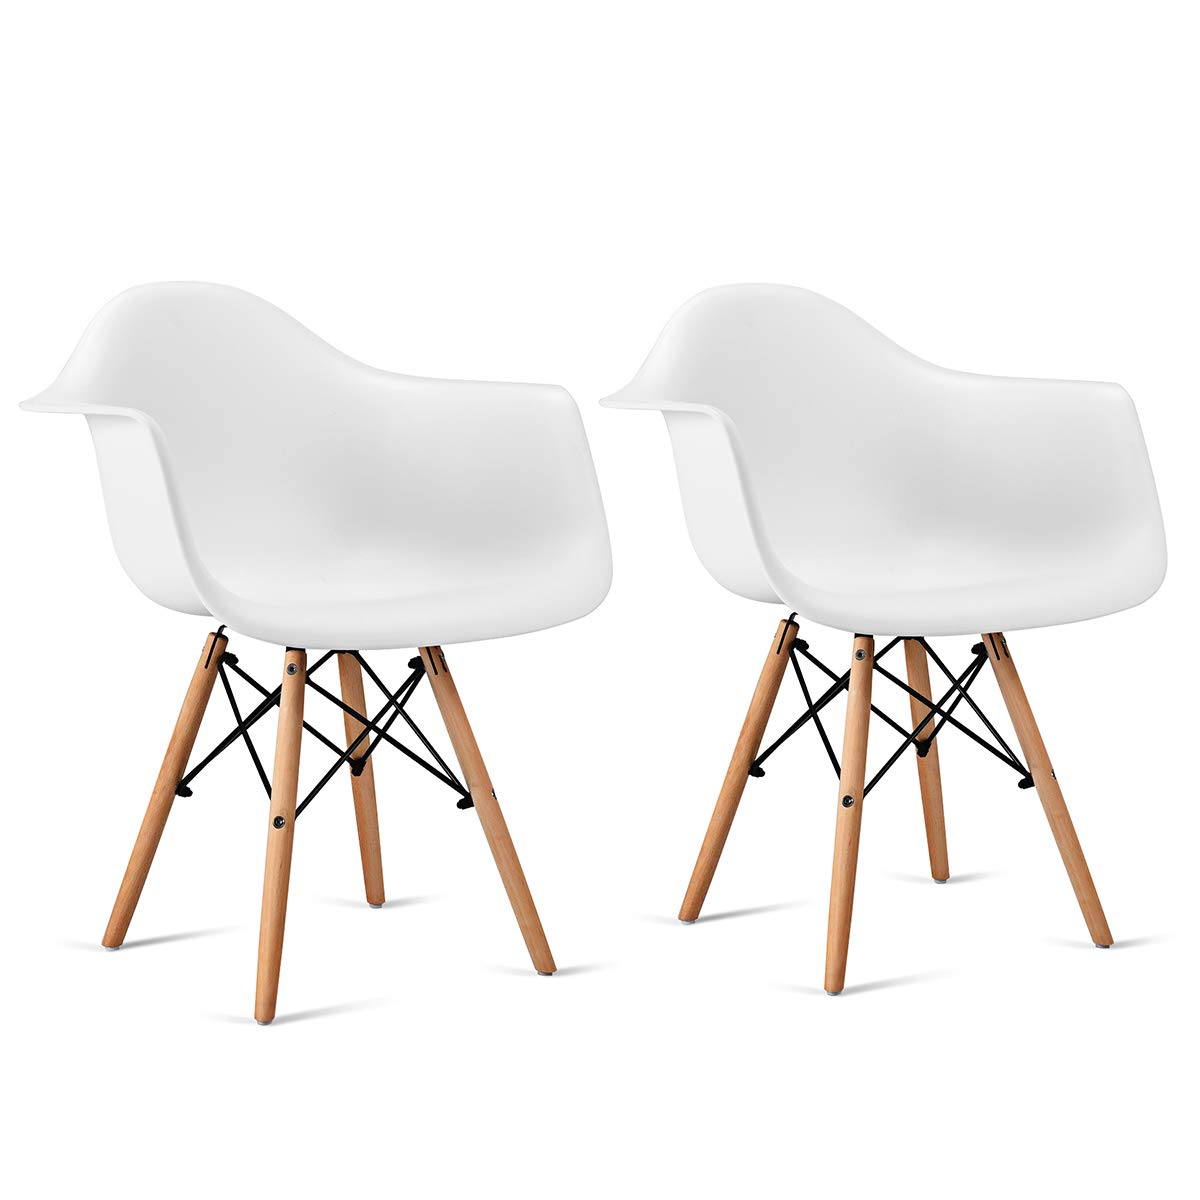 Giantex Set of 2 Modern Dining Chairs w Natural Wood Legs, Easily Assemble Mid Century DSW Molded Plastic Shell Arm Chair for Living Room, Bedroom, Kitchen, Dining Room, Waiting Room, White